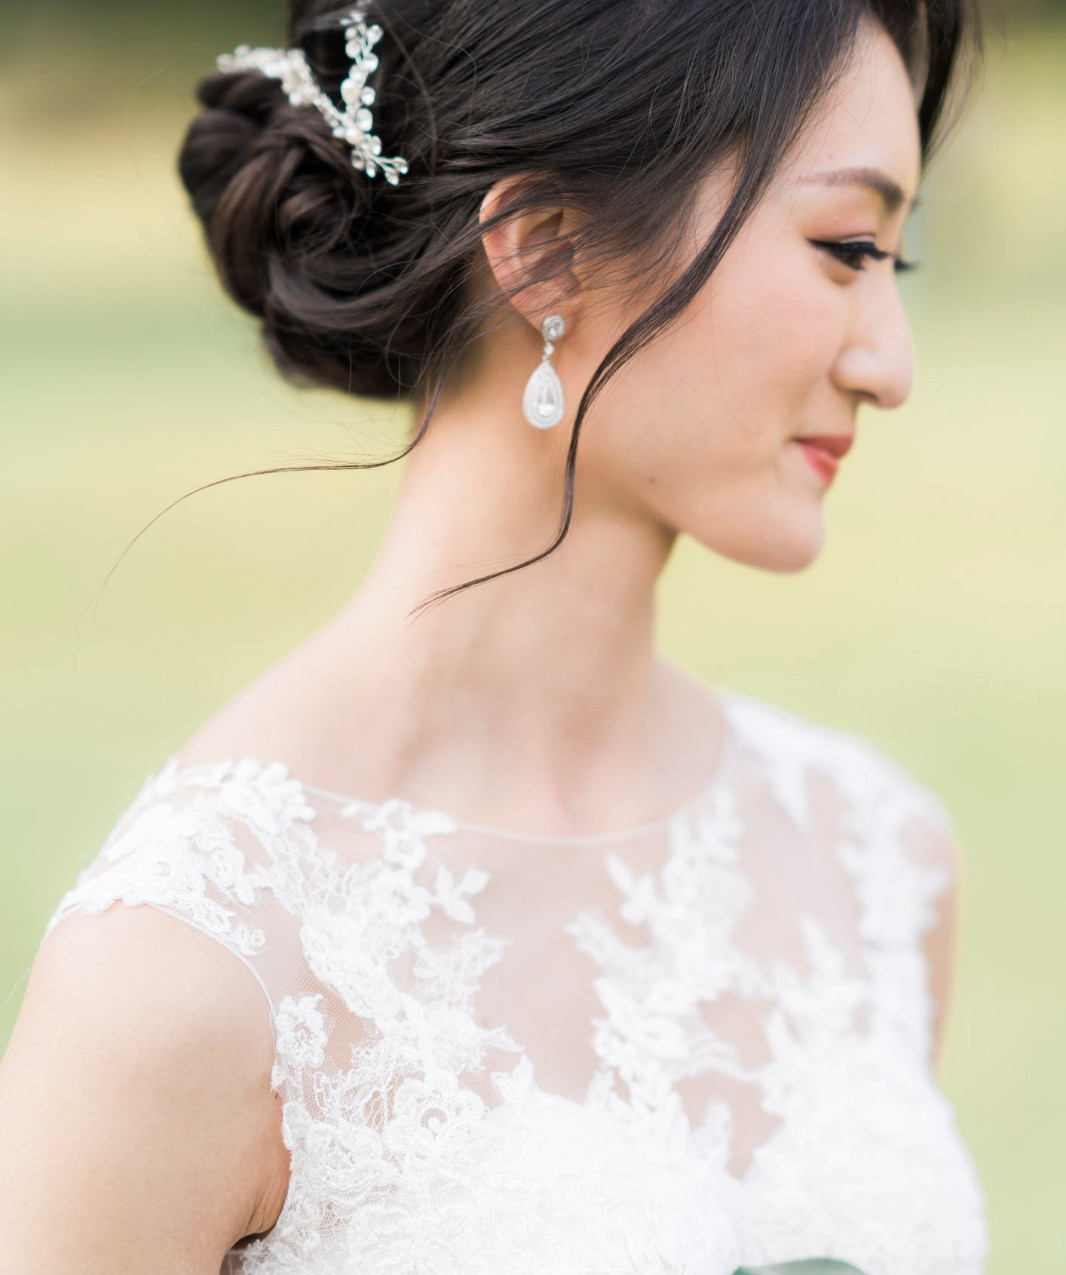 Korean Hair and Makeup Artist Sydney Photography: Two Peaches Photography